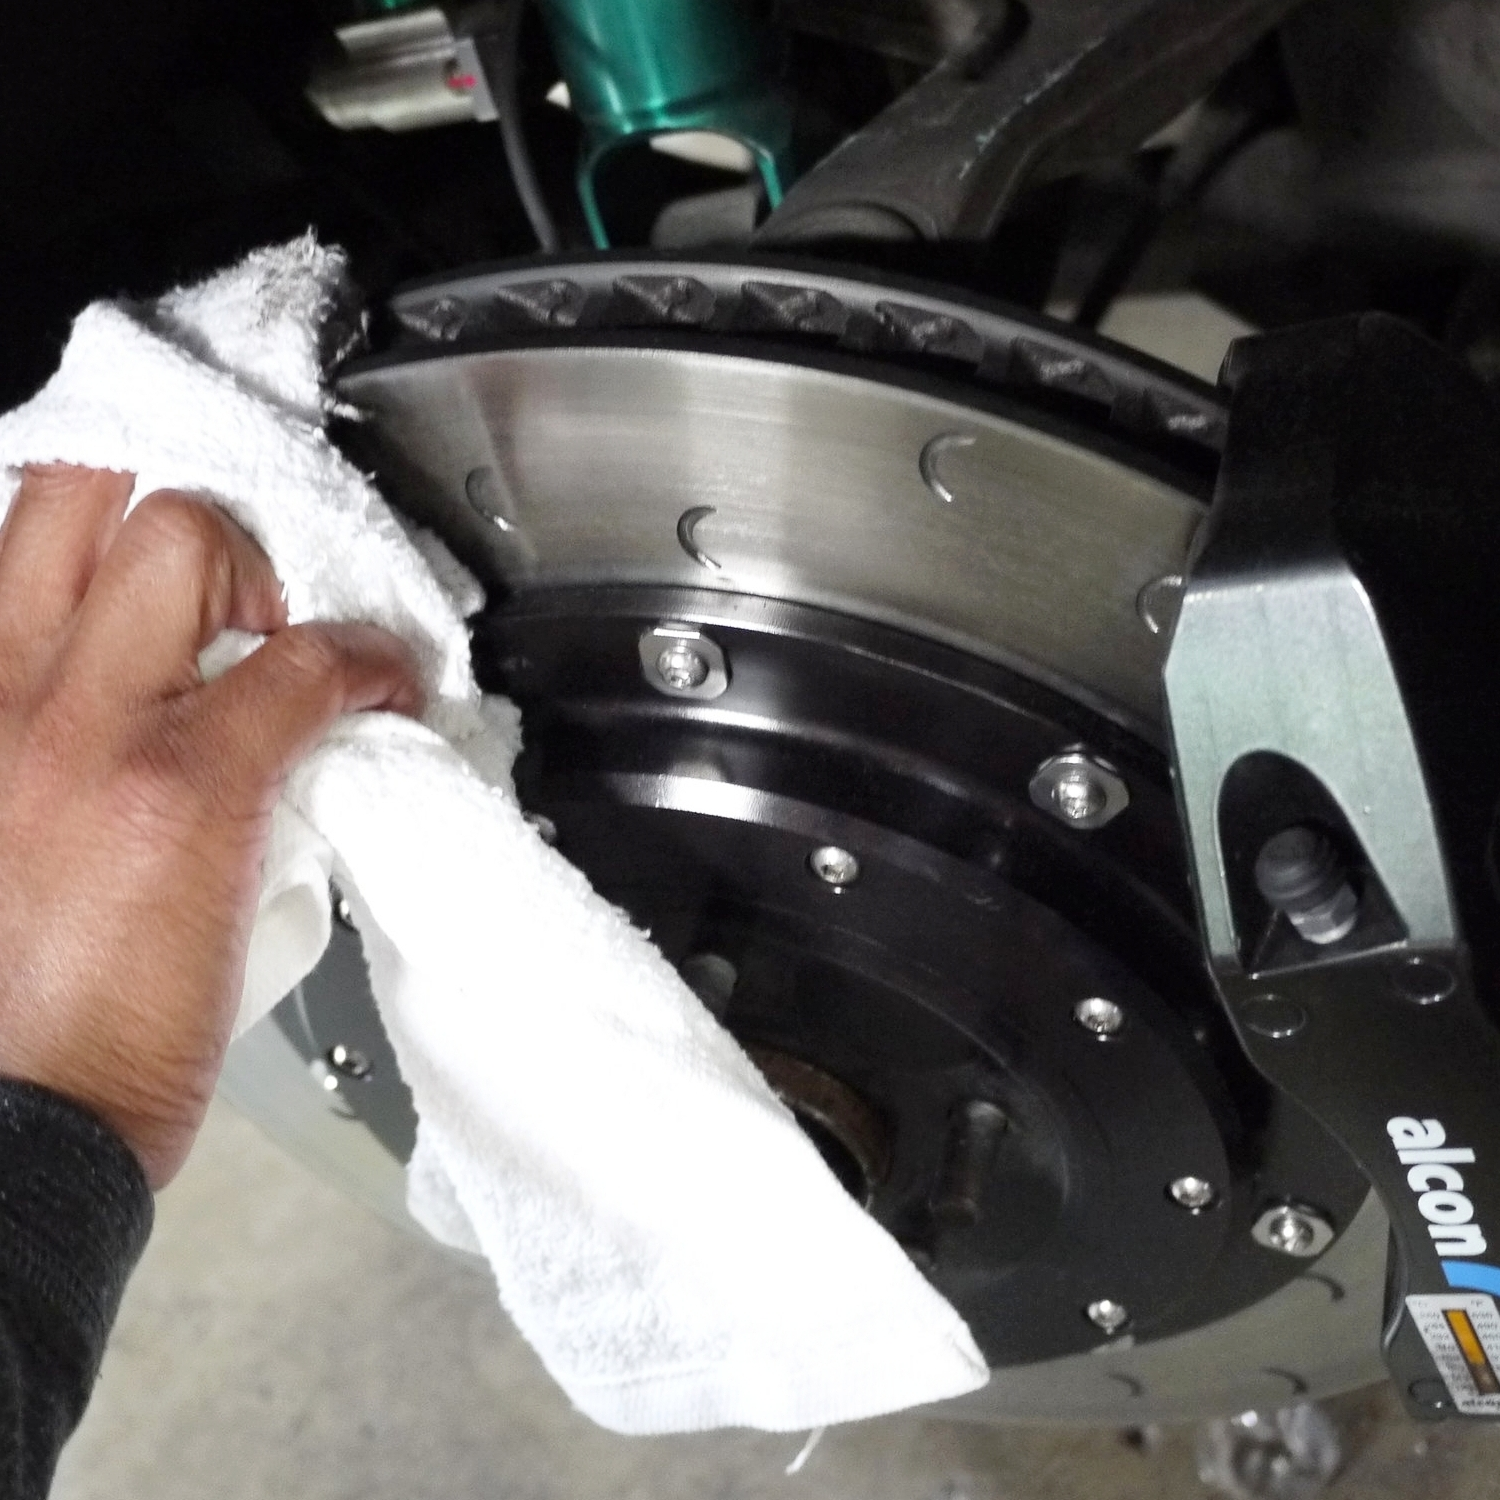 STEP 1 - Please use a clean rag and brake cleaner toclean the applied brake disc surfaces free of contaminants and other dirt. Contaminated surfaces may not allow the temperature paint to oxidize at the right temperatures which may lead to false information.